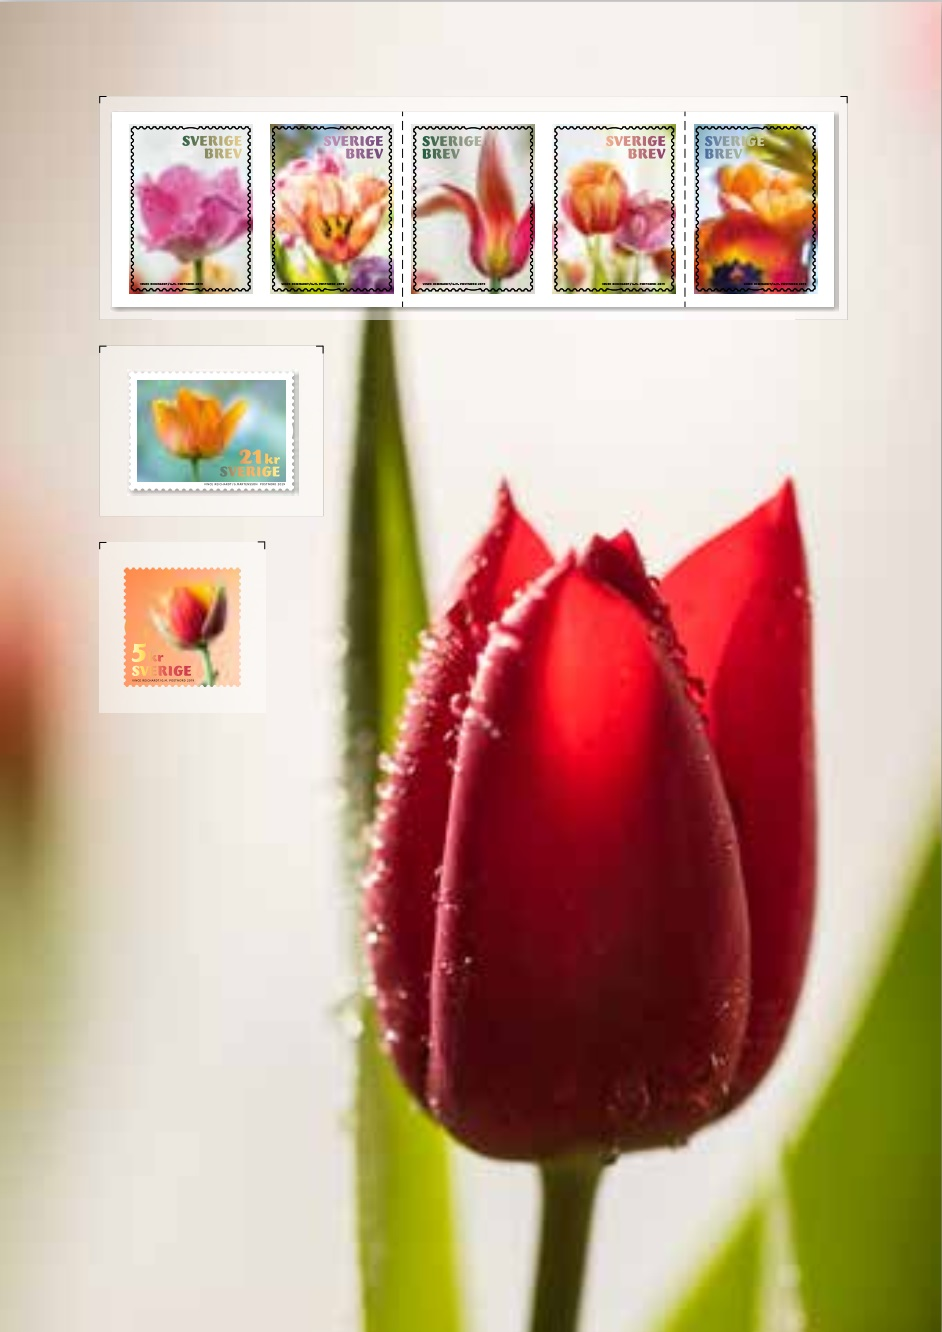 Sweden - Tulips (January 10, 2019) PostNord Sverige AB